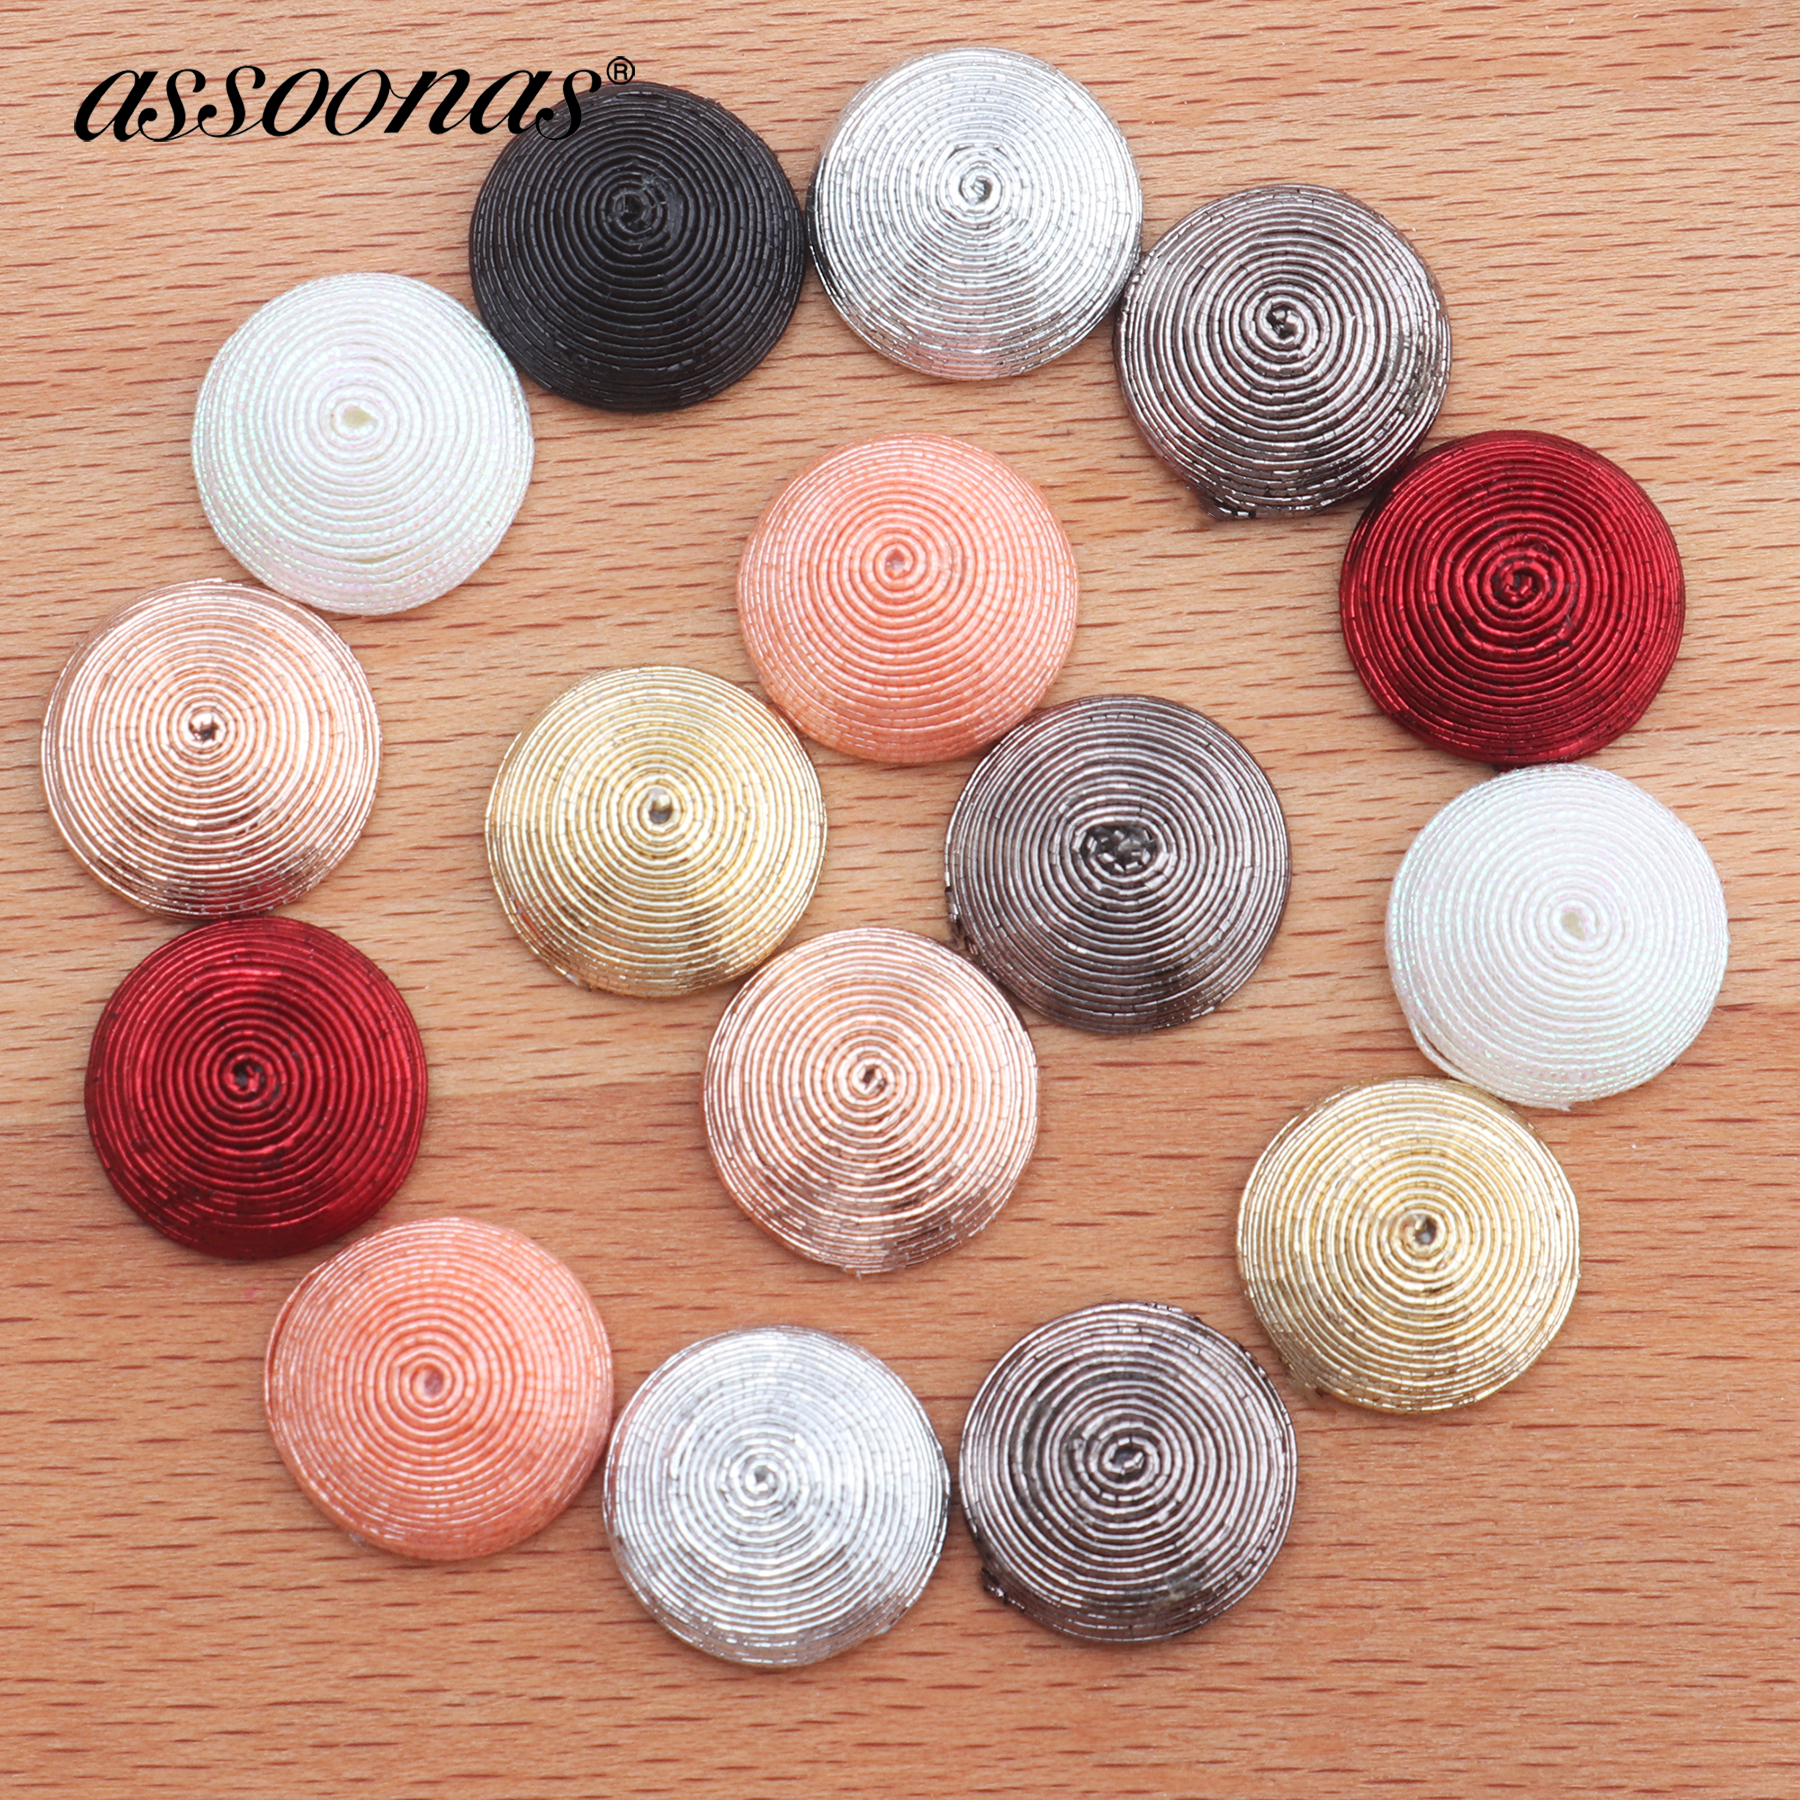 Assoonas M496,Metal Hemisphere,jewelry Accessories,jewelry Making,earring Decoration,hand Made,diy Earrings Pendant,10pcs/lot